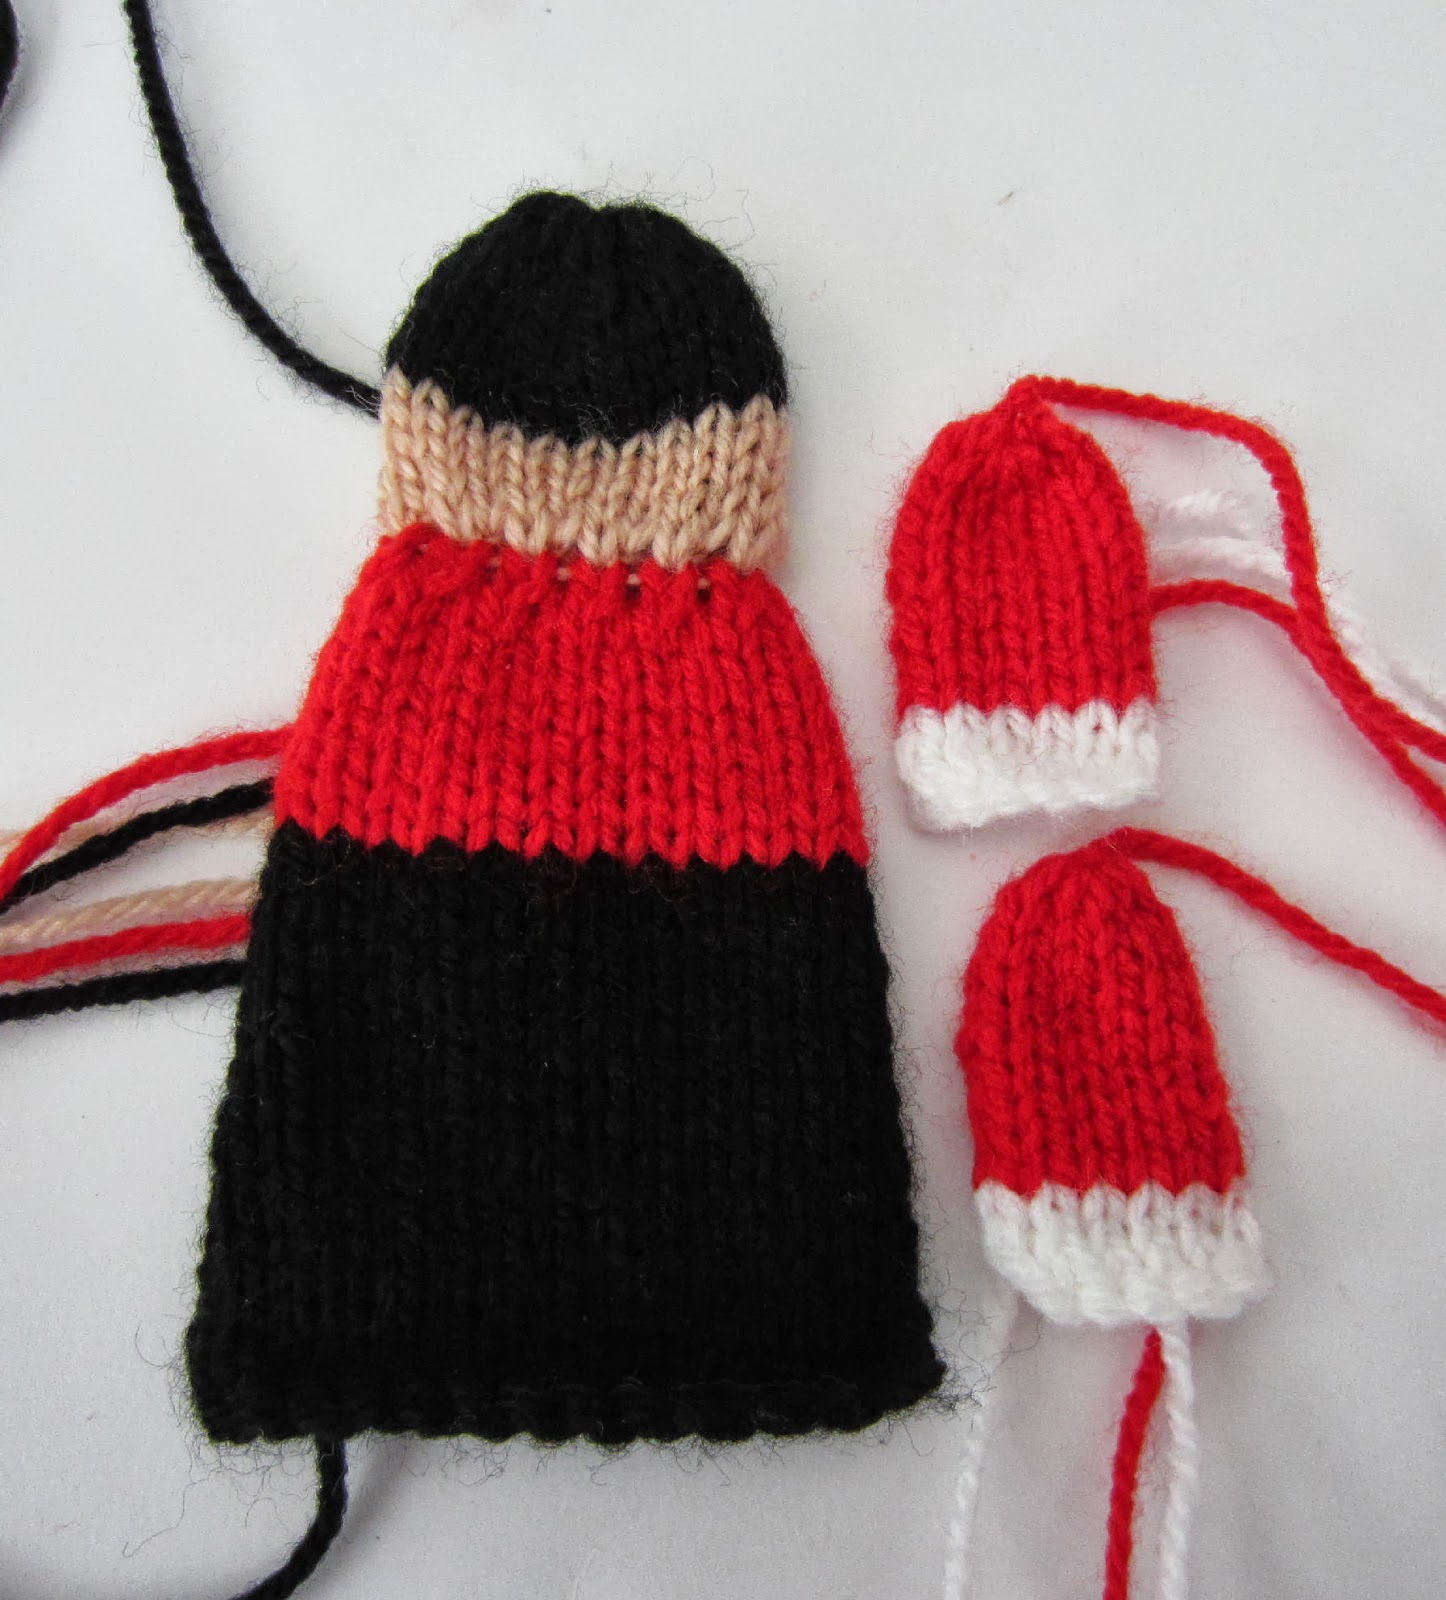 Justjen-knits&stitches: Toy Soldier Christmas Ornament ...